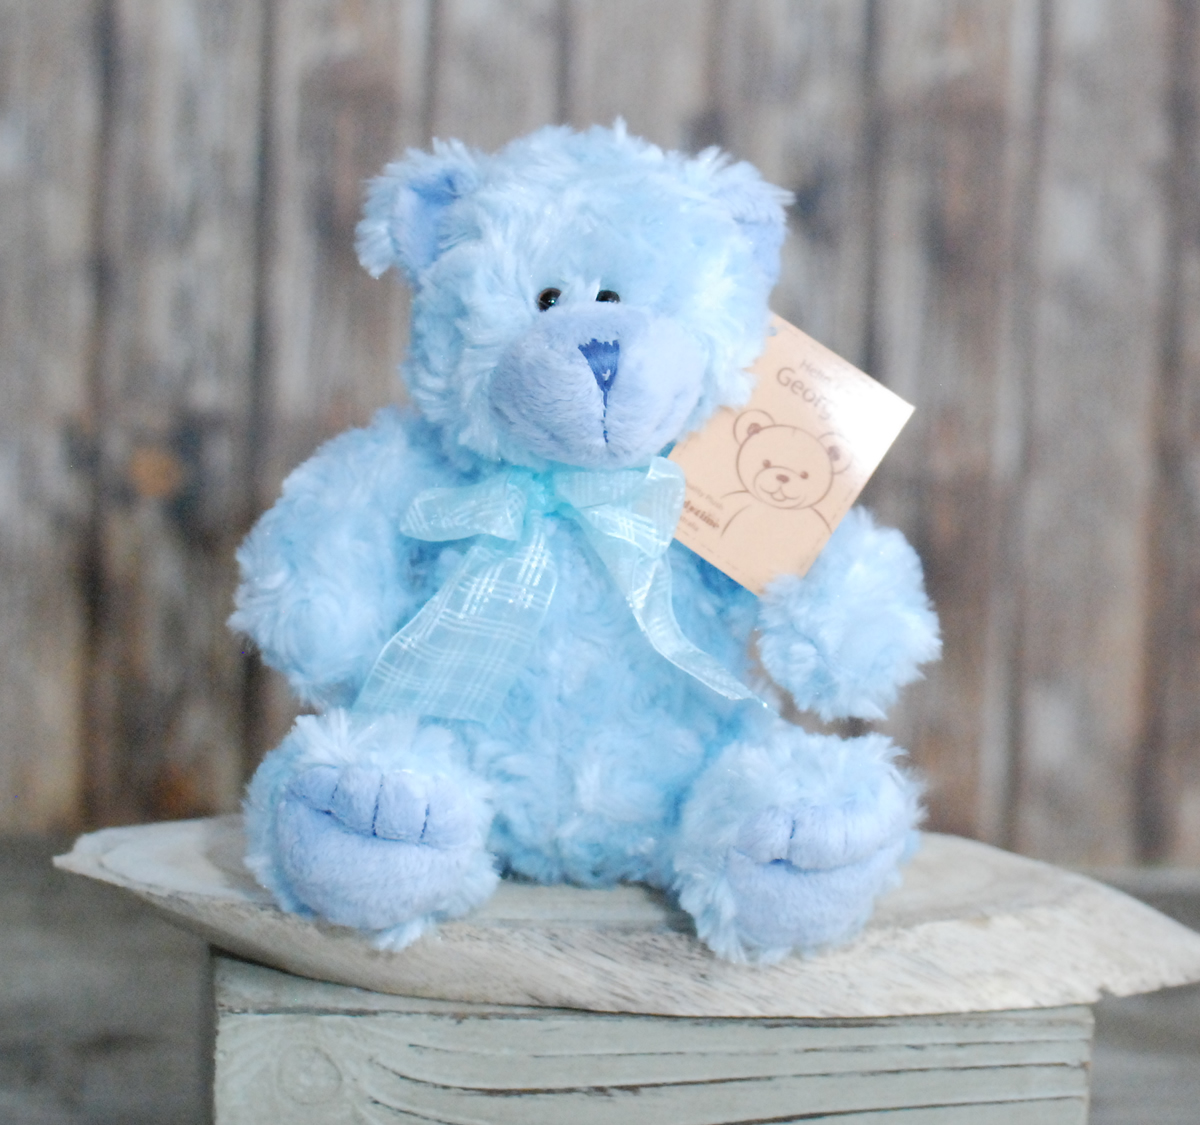 Blue teddy bear Medium – 20cm